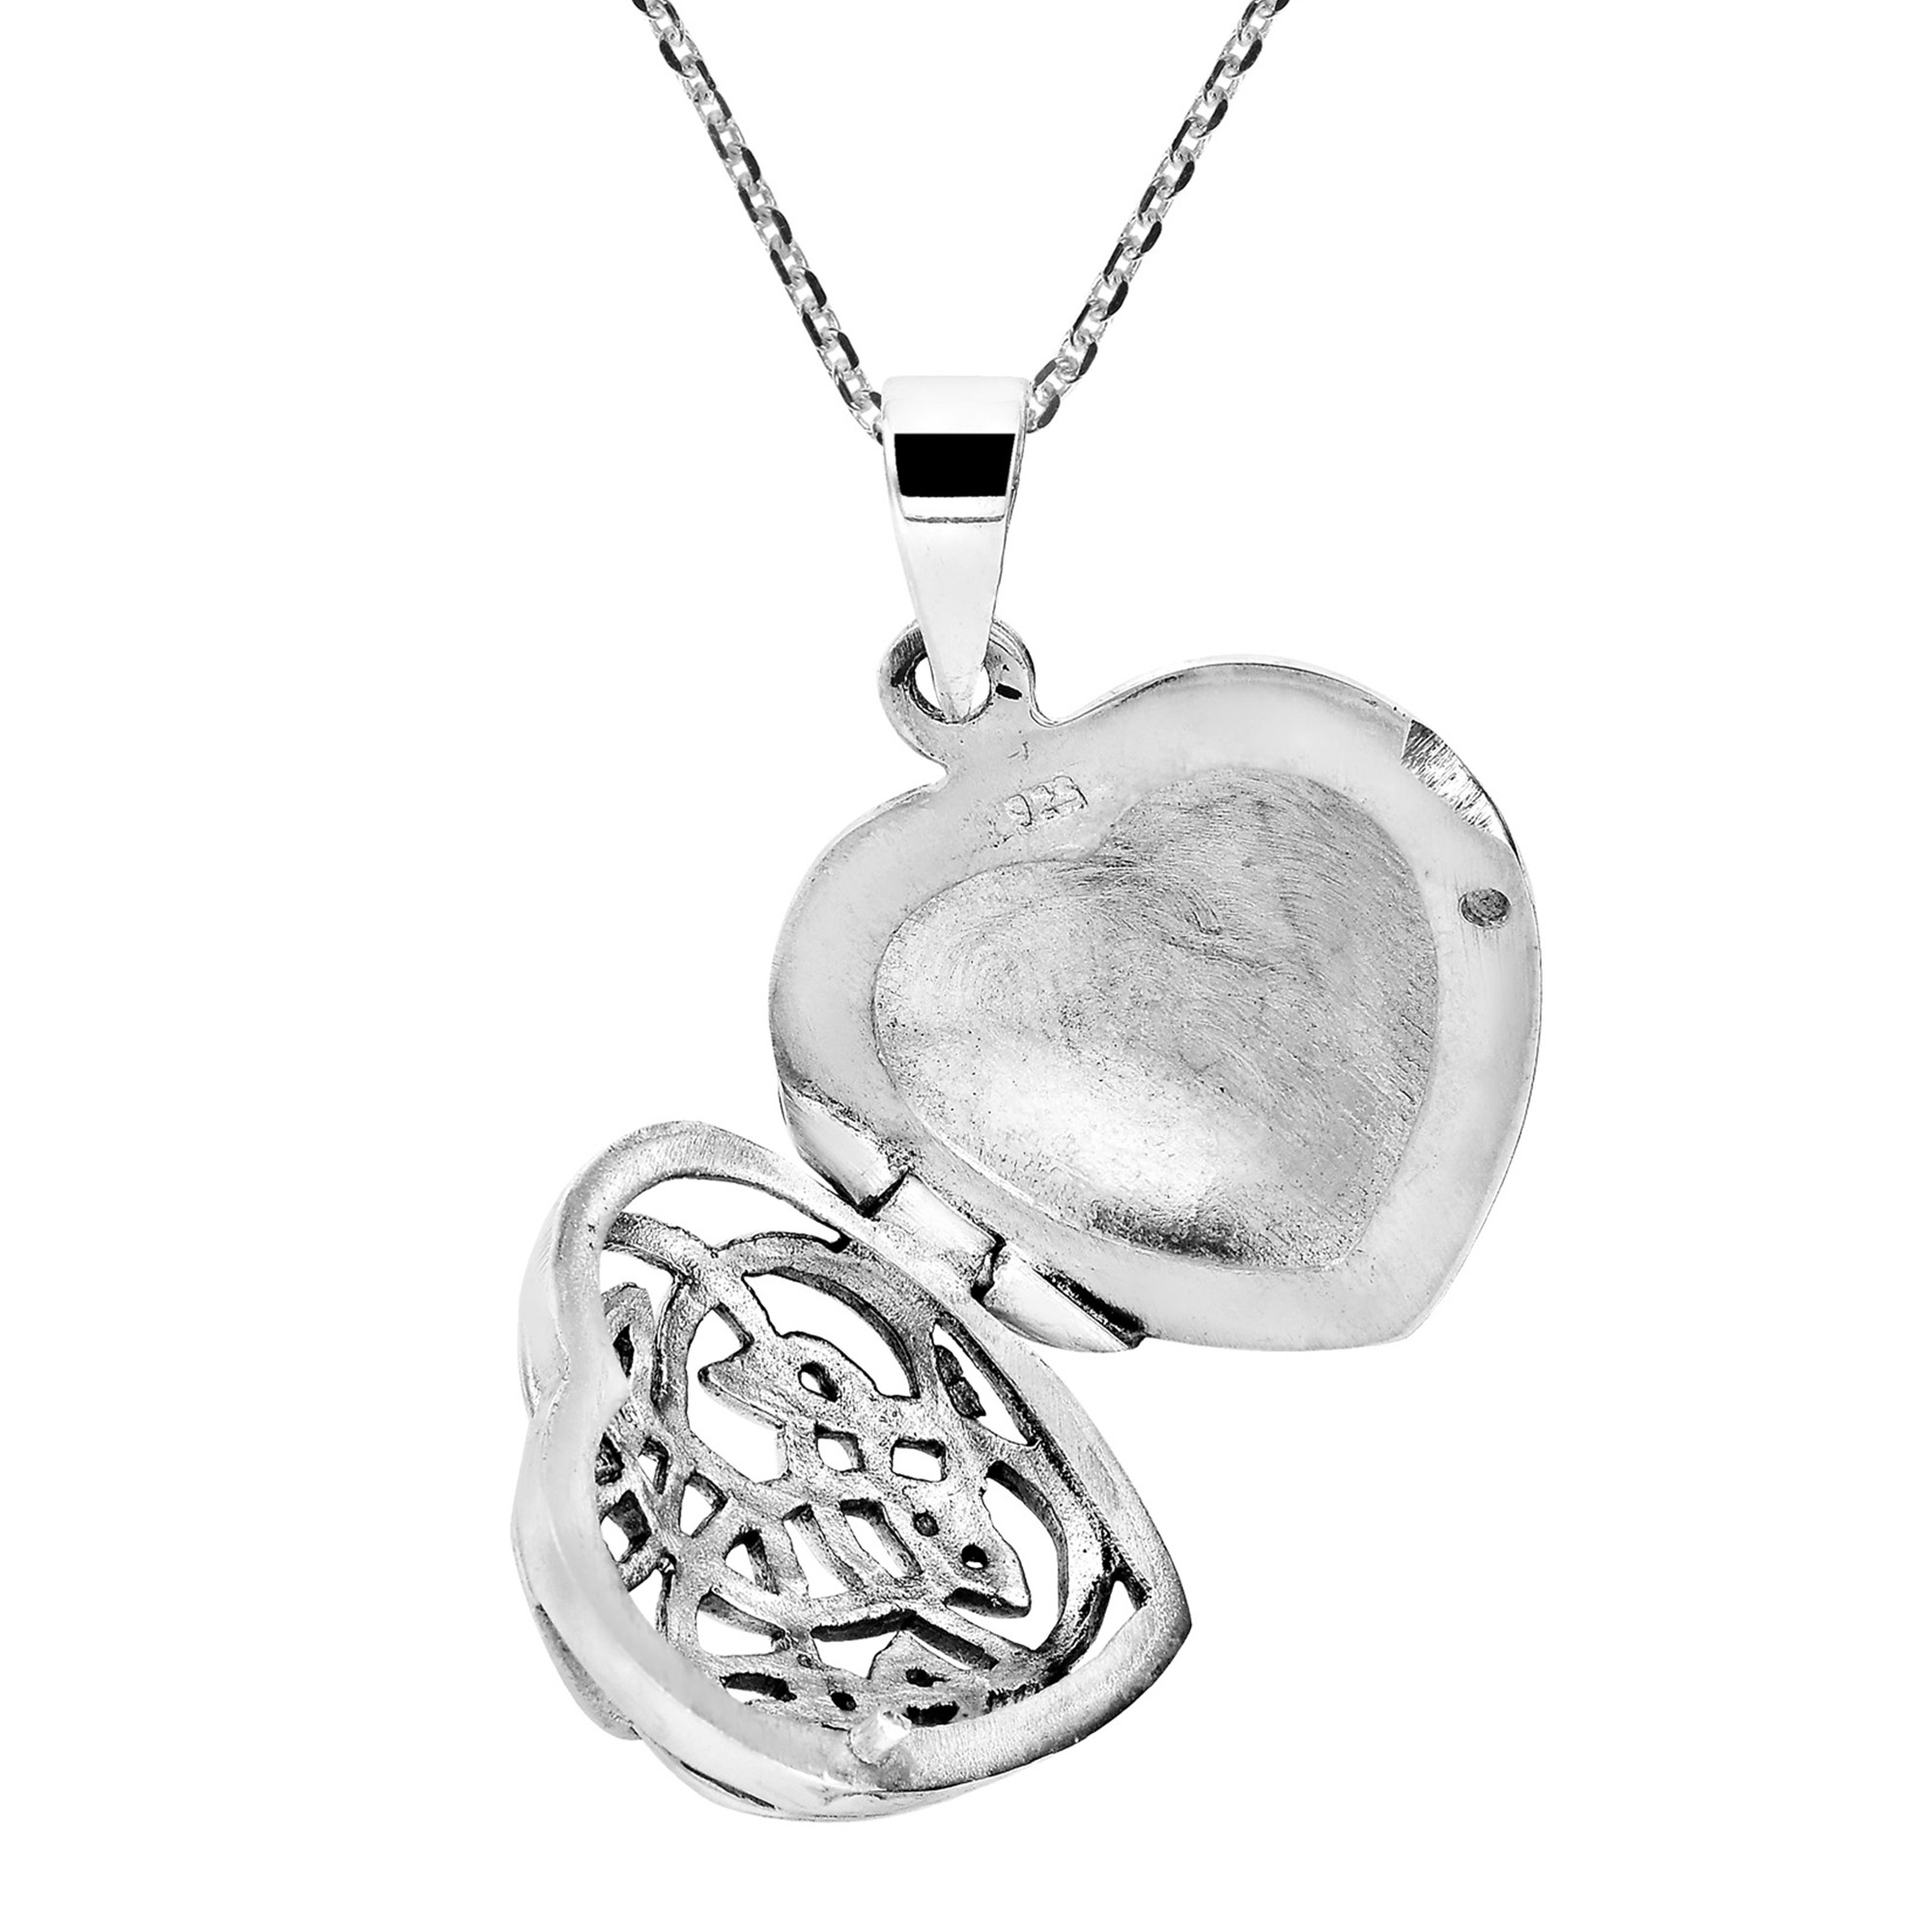 2000x2000 Endless Celtic Knot Heart Locket Sterling Silver Necklace